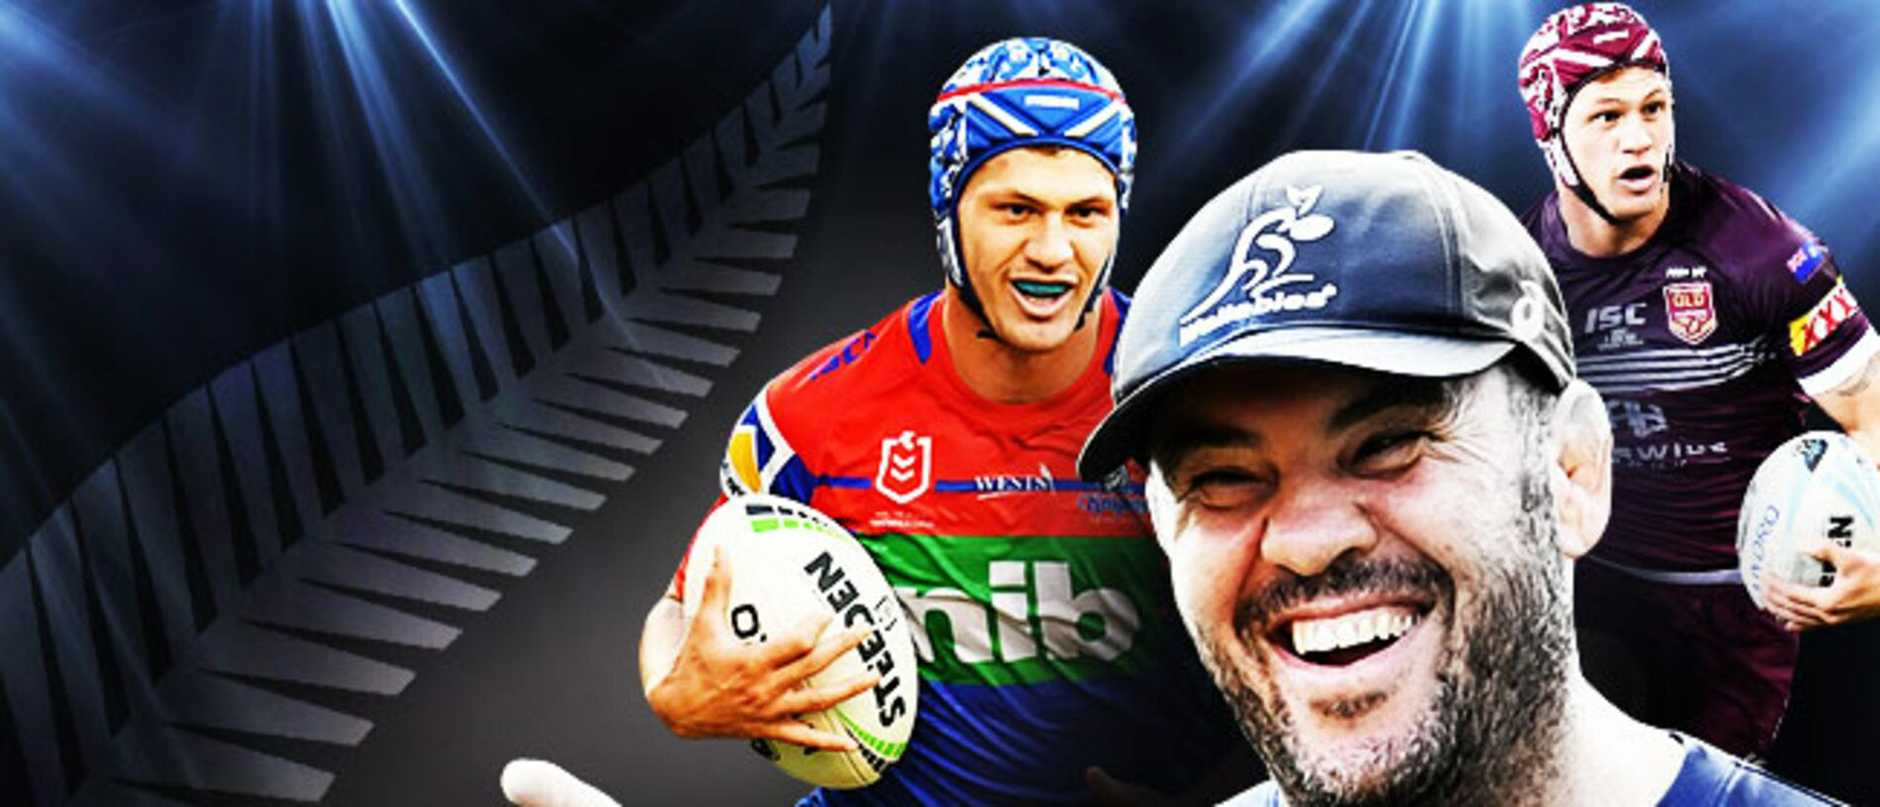 Michael Cheika reaches out to Ponga in a bold bid to lure the NRL superstar to rugby, via Dean Ritchie.